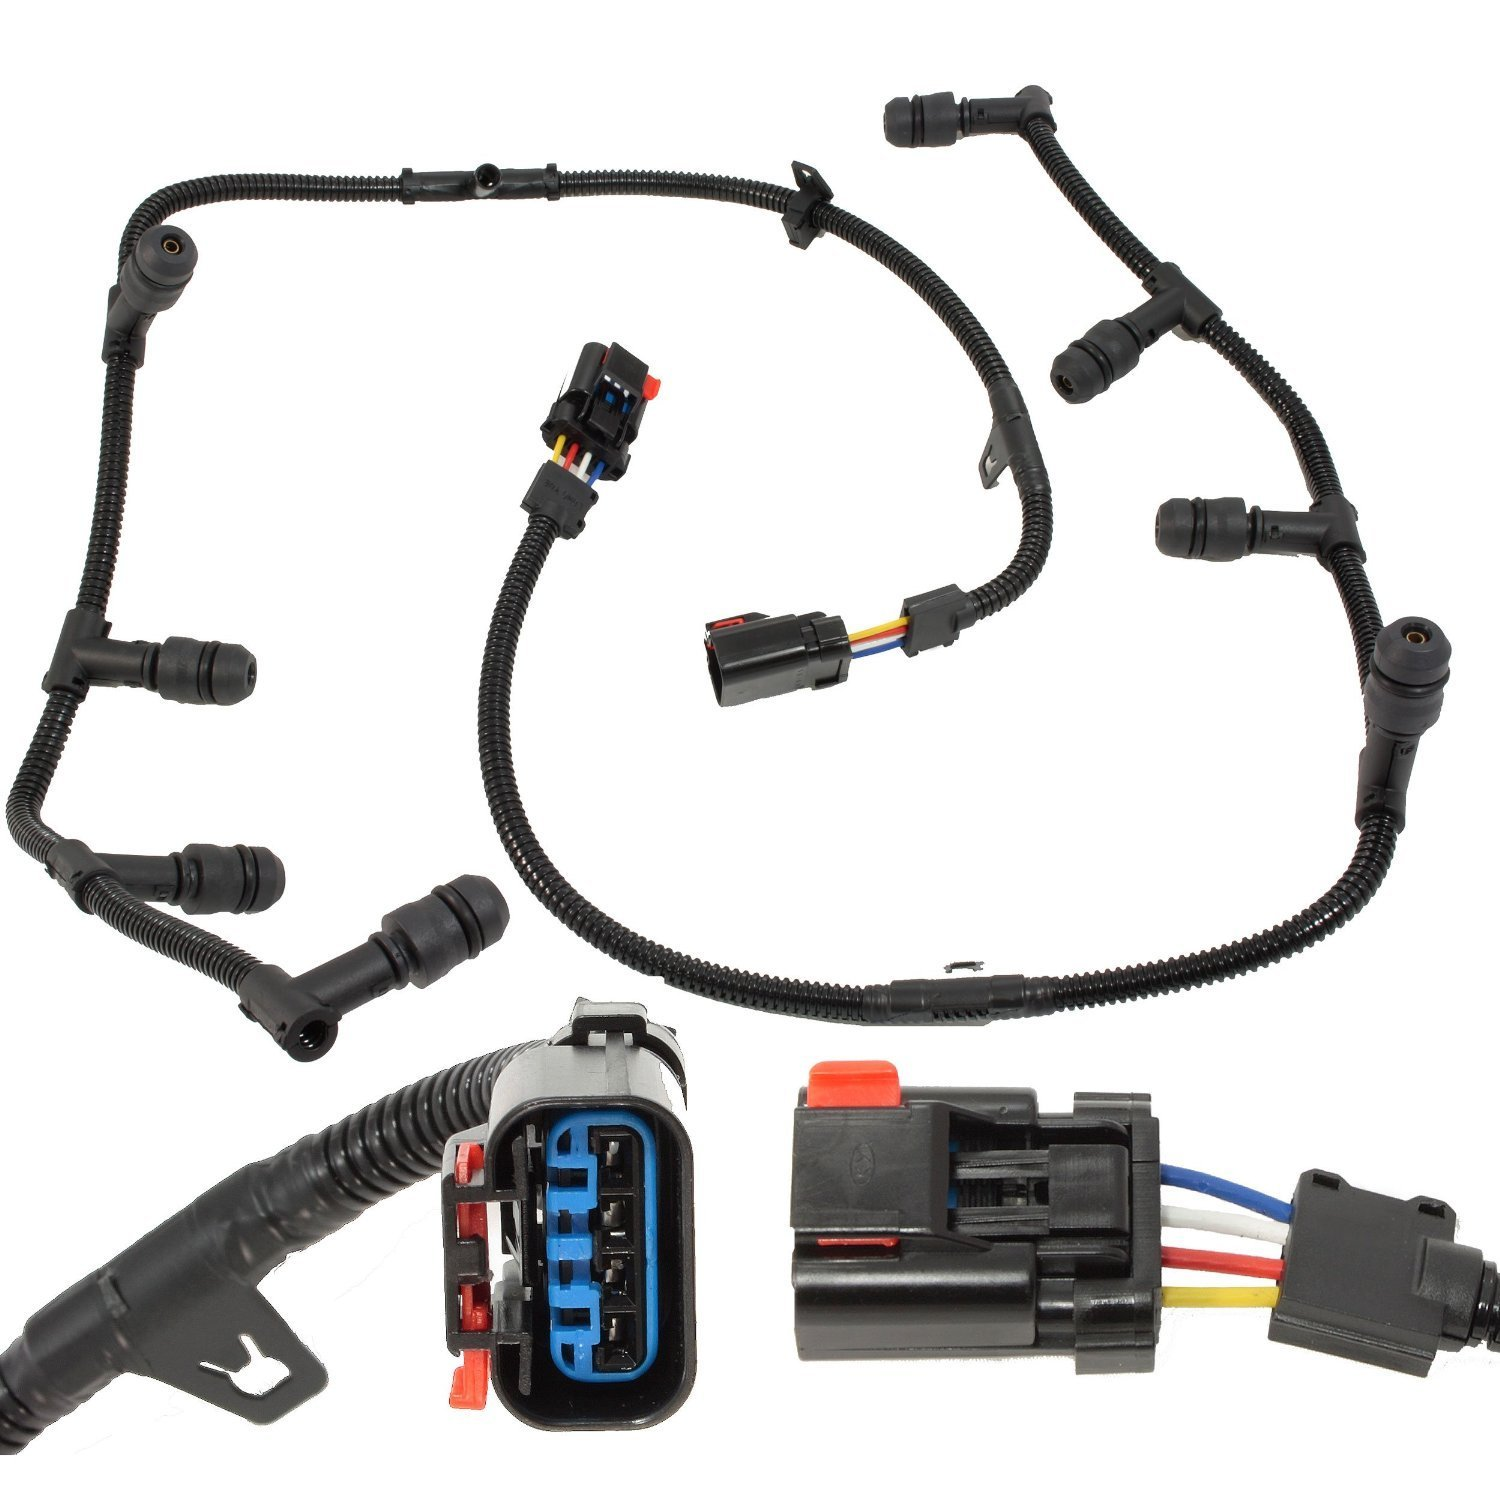 Michigan Motorsports Glow Plug Wiring Harness Assembly Fits 2004 2010 Ford F250 F350 F450 F550 E250